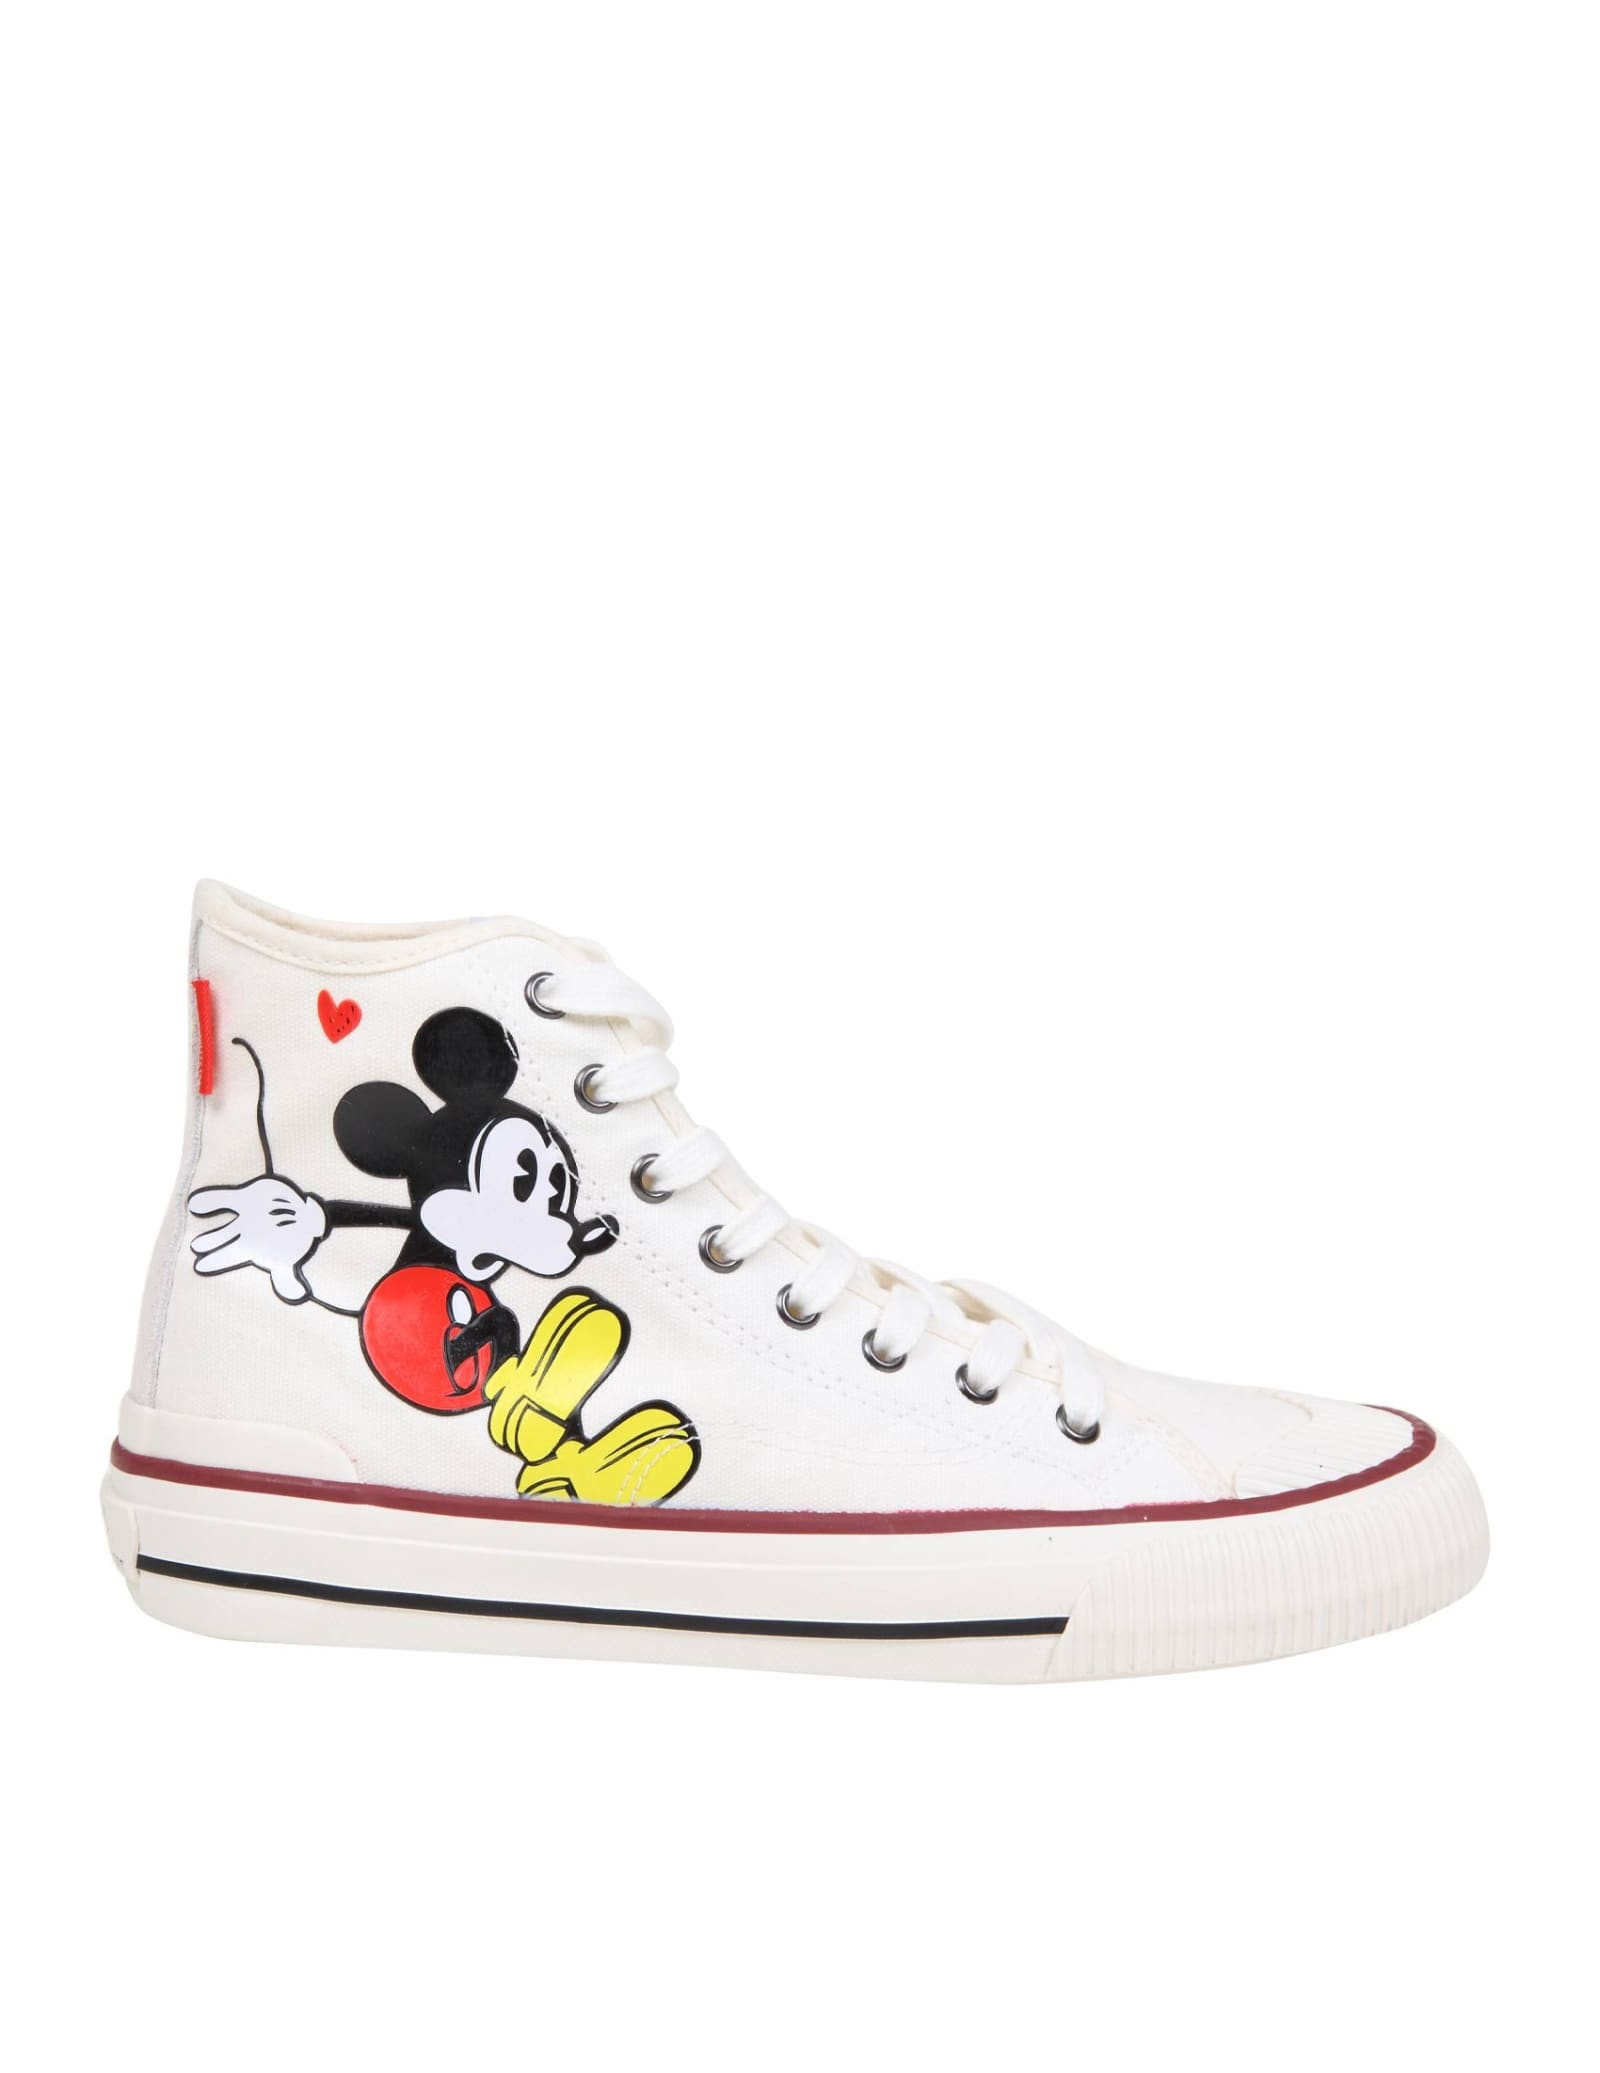 M.o.a. Master Of Arts MOA SNEAKERS IN FABRIC WITH MICKEY MOUSE PRINT